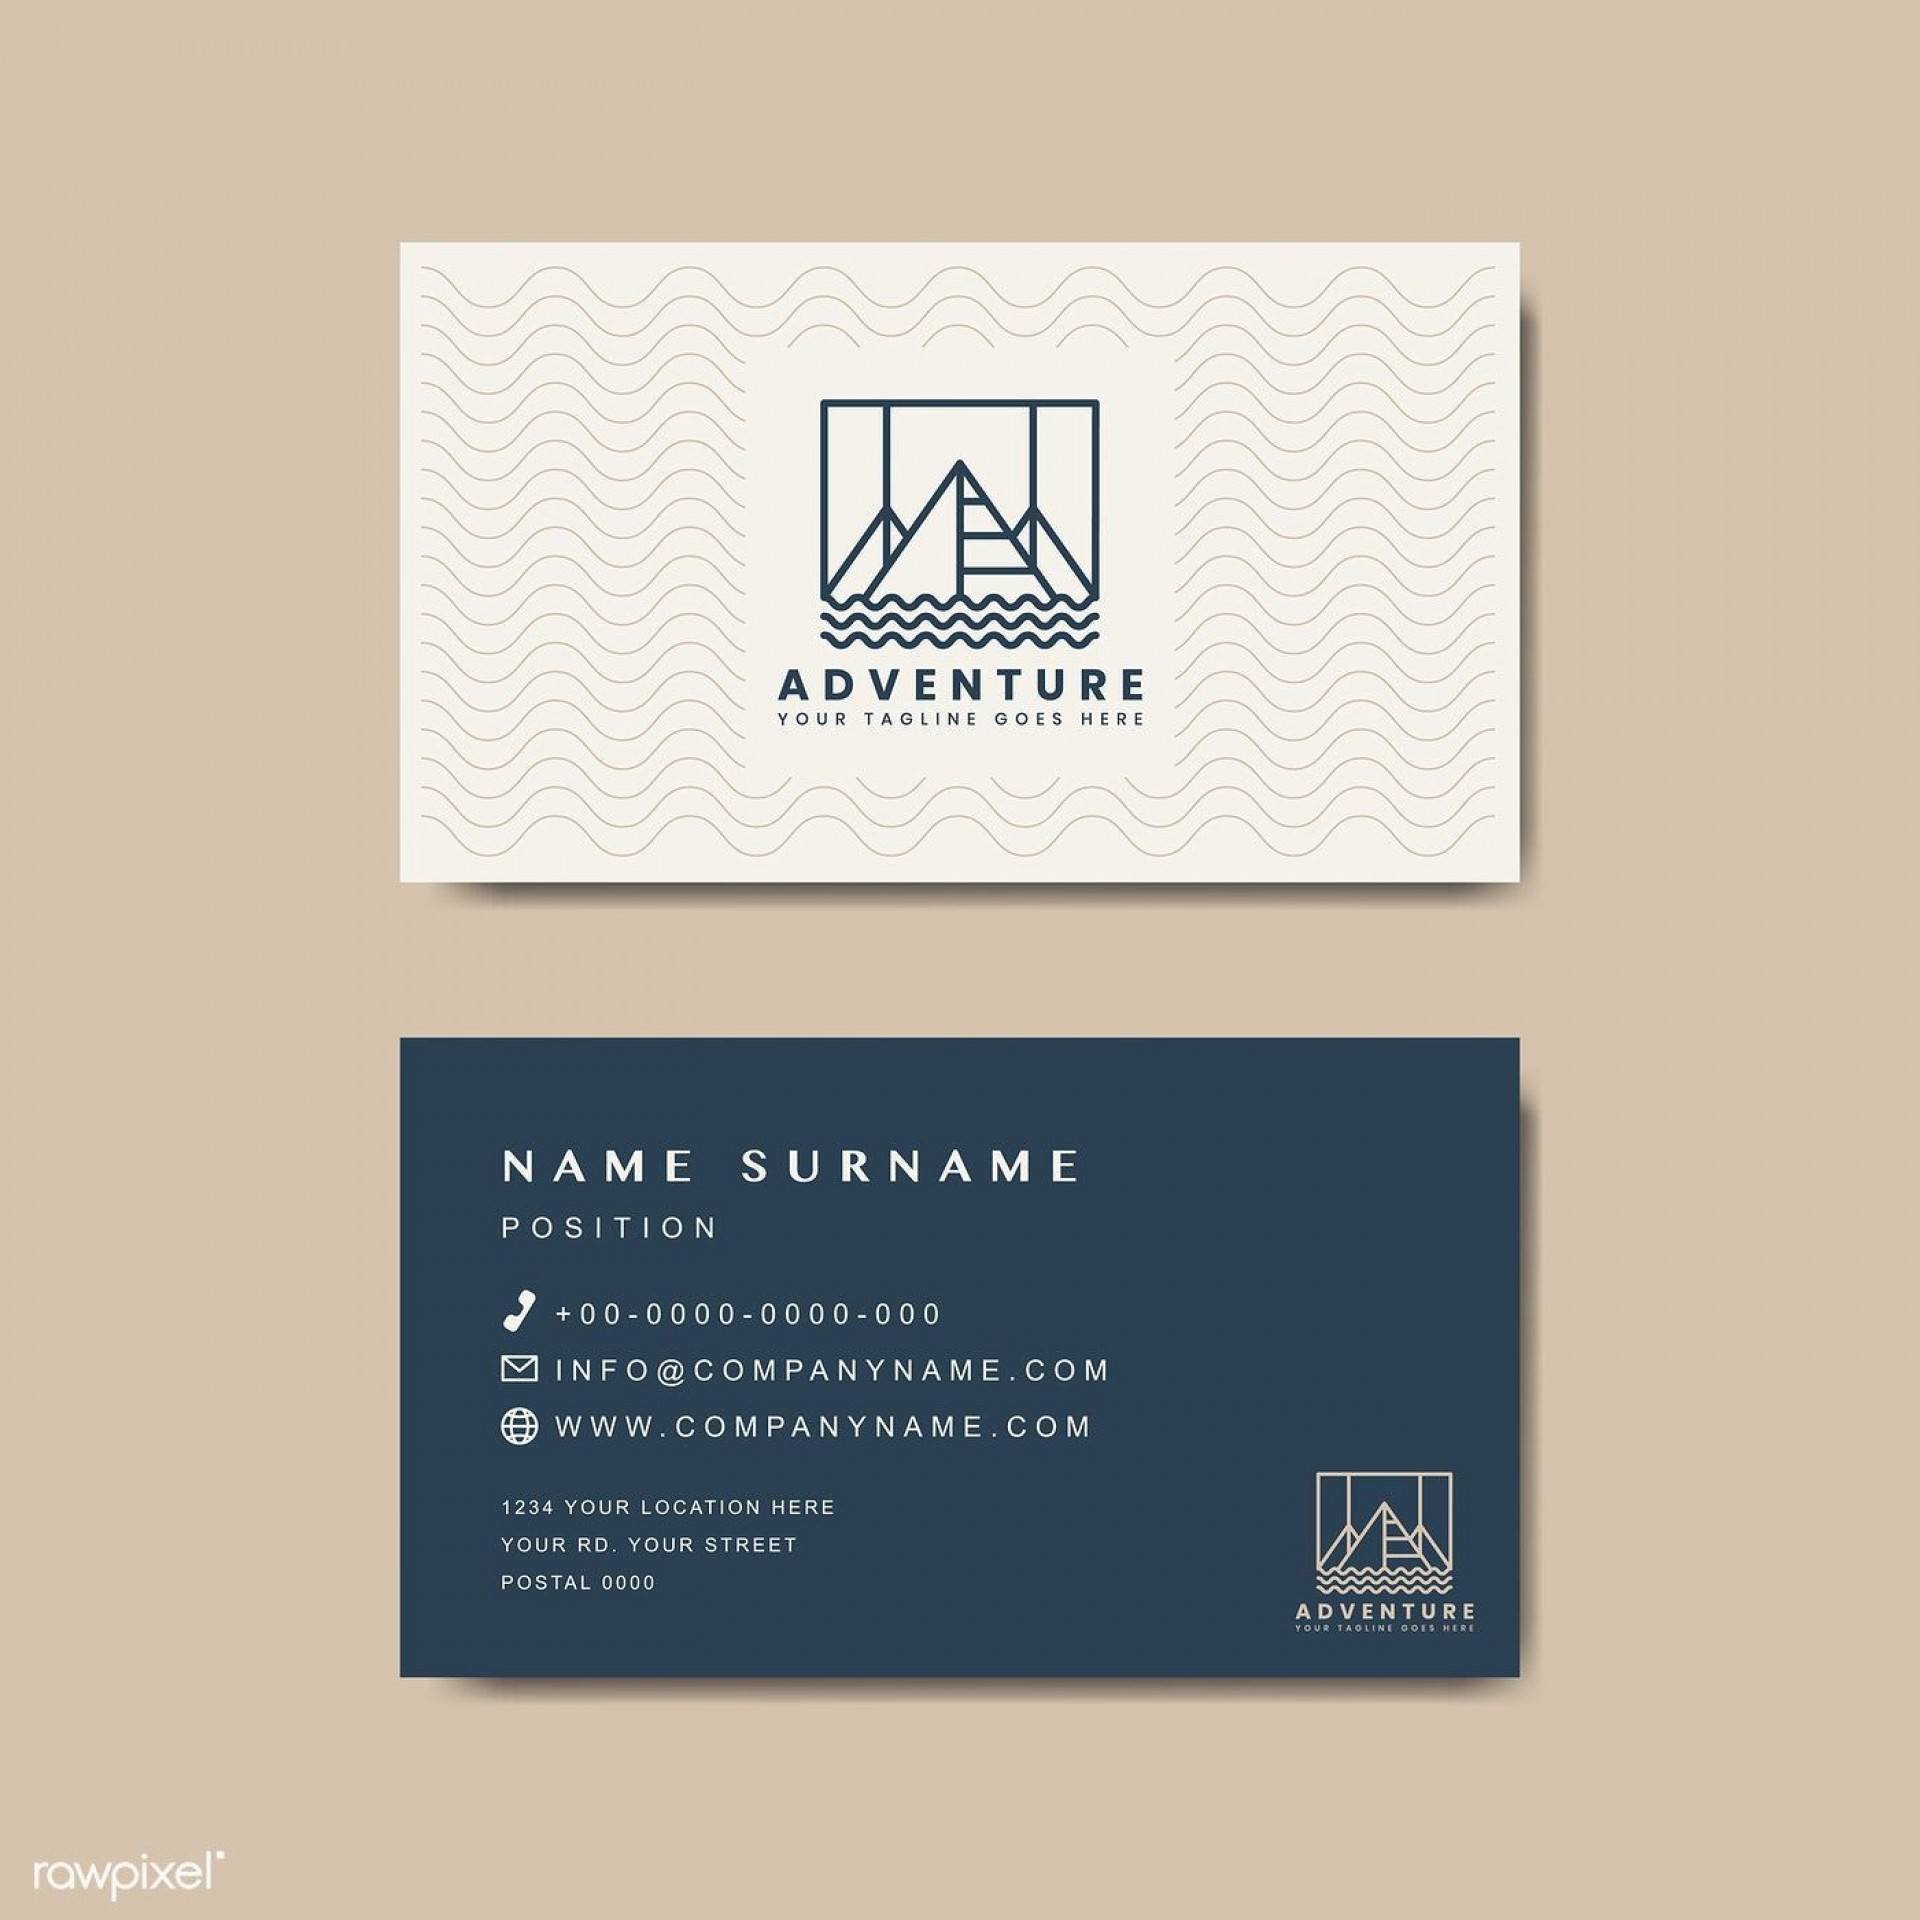 005 Surprising Minimalist Busines Card Template Free Download High Definition 1920